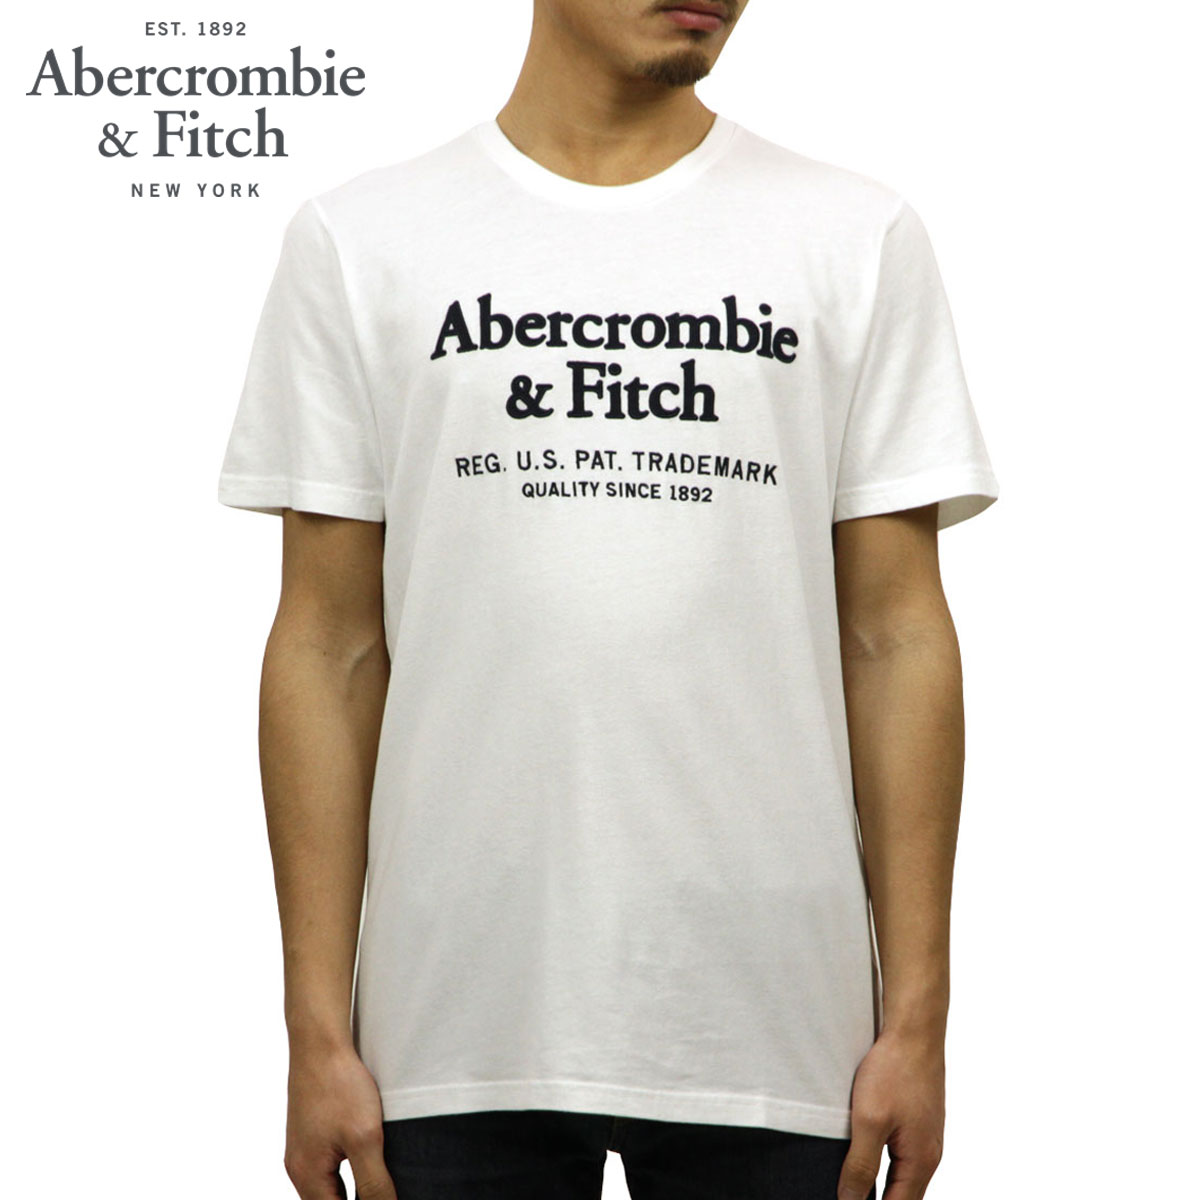 6c901f6d Categories. « All Categories · Men's Clothing · Tops · T-shirts & Tank Tops  · ABBA black Abercrombie & Fitch regular article men crew neck logo  short ...